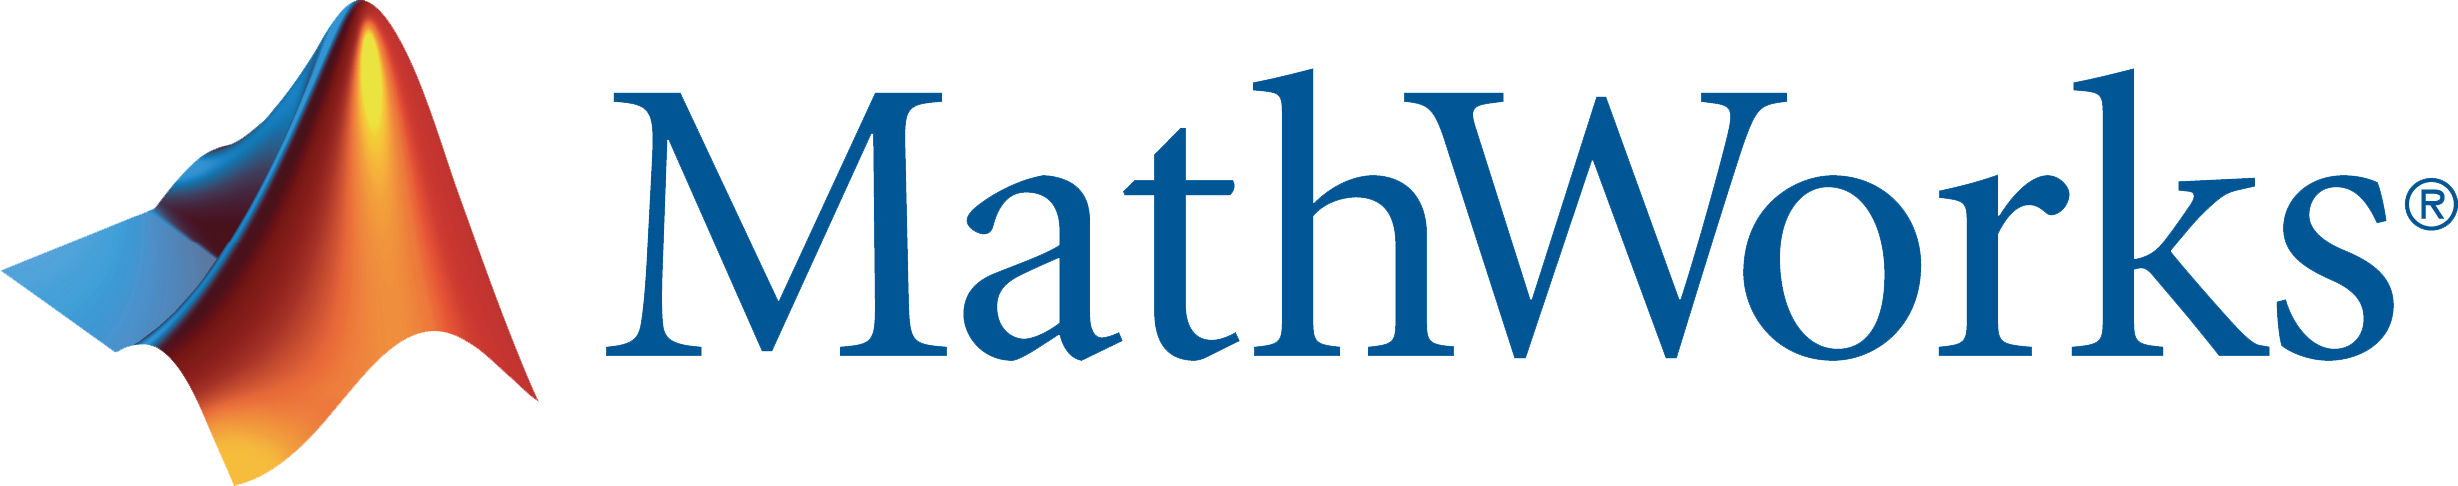 Semiconductor Design Services using Mathworks tools